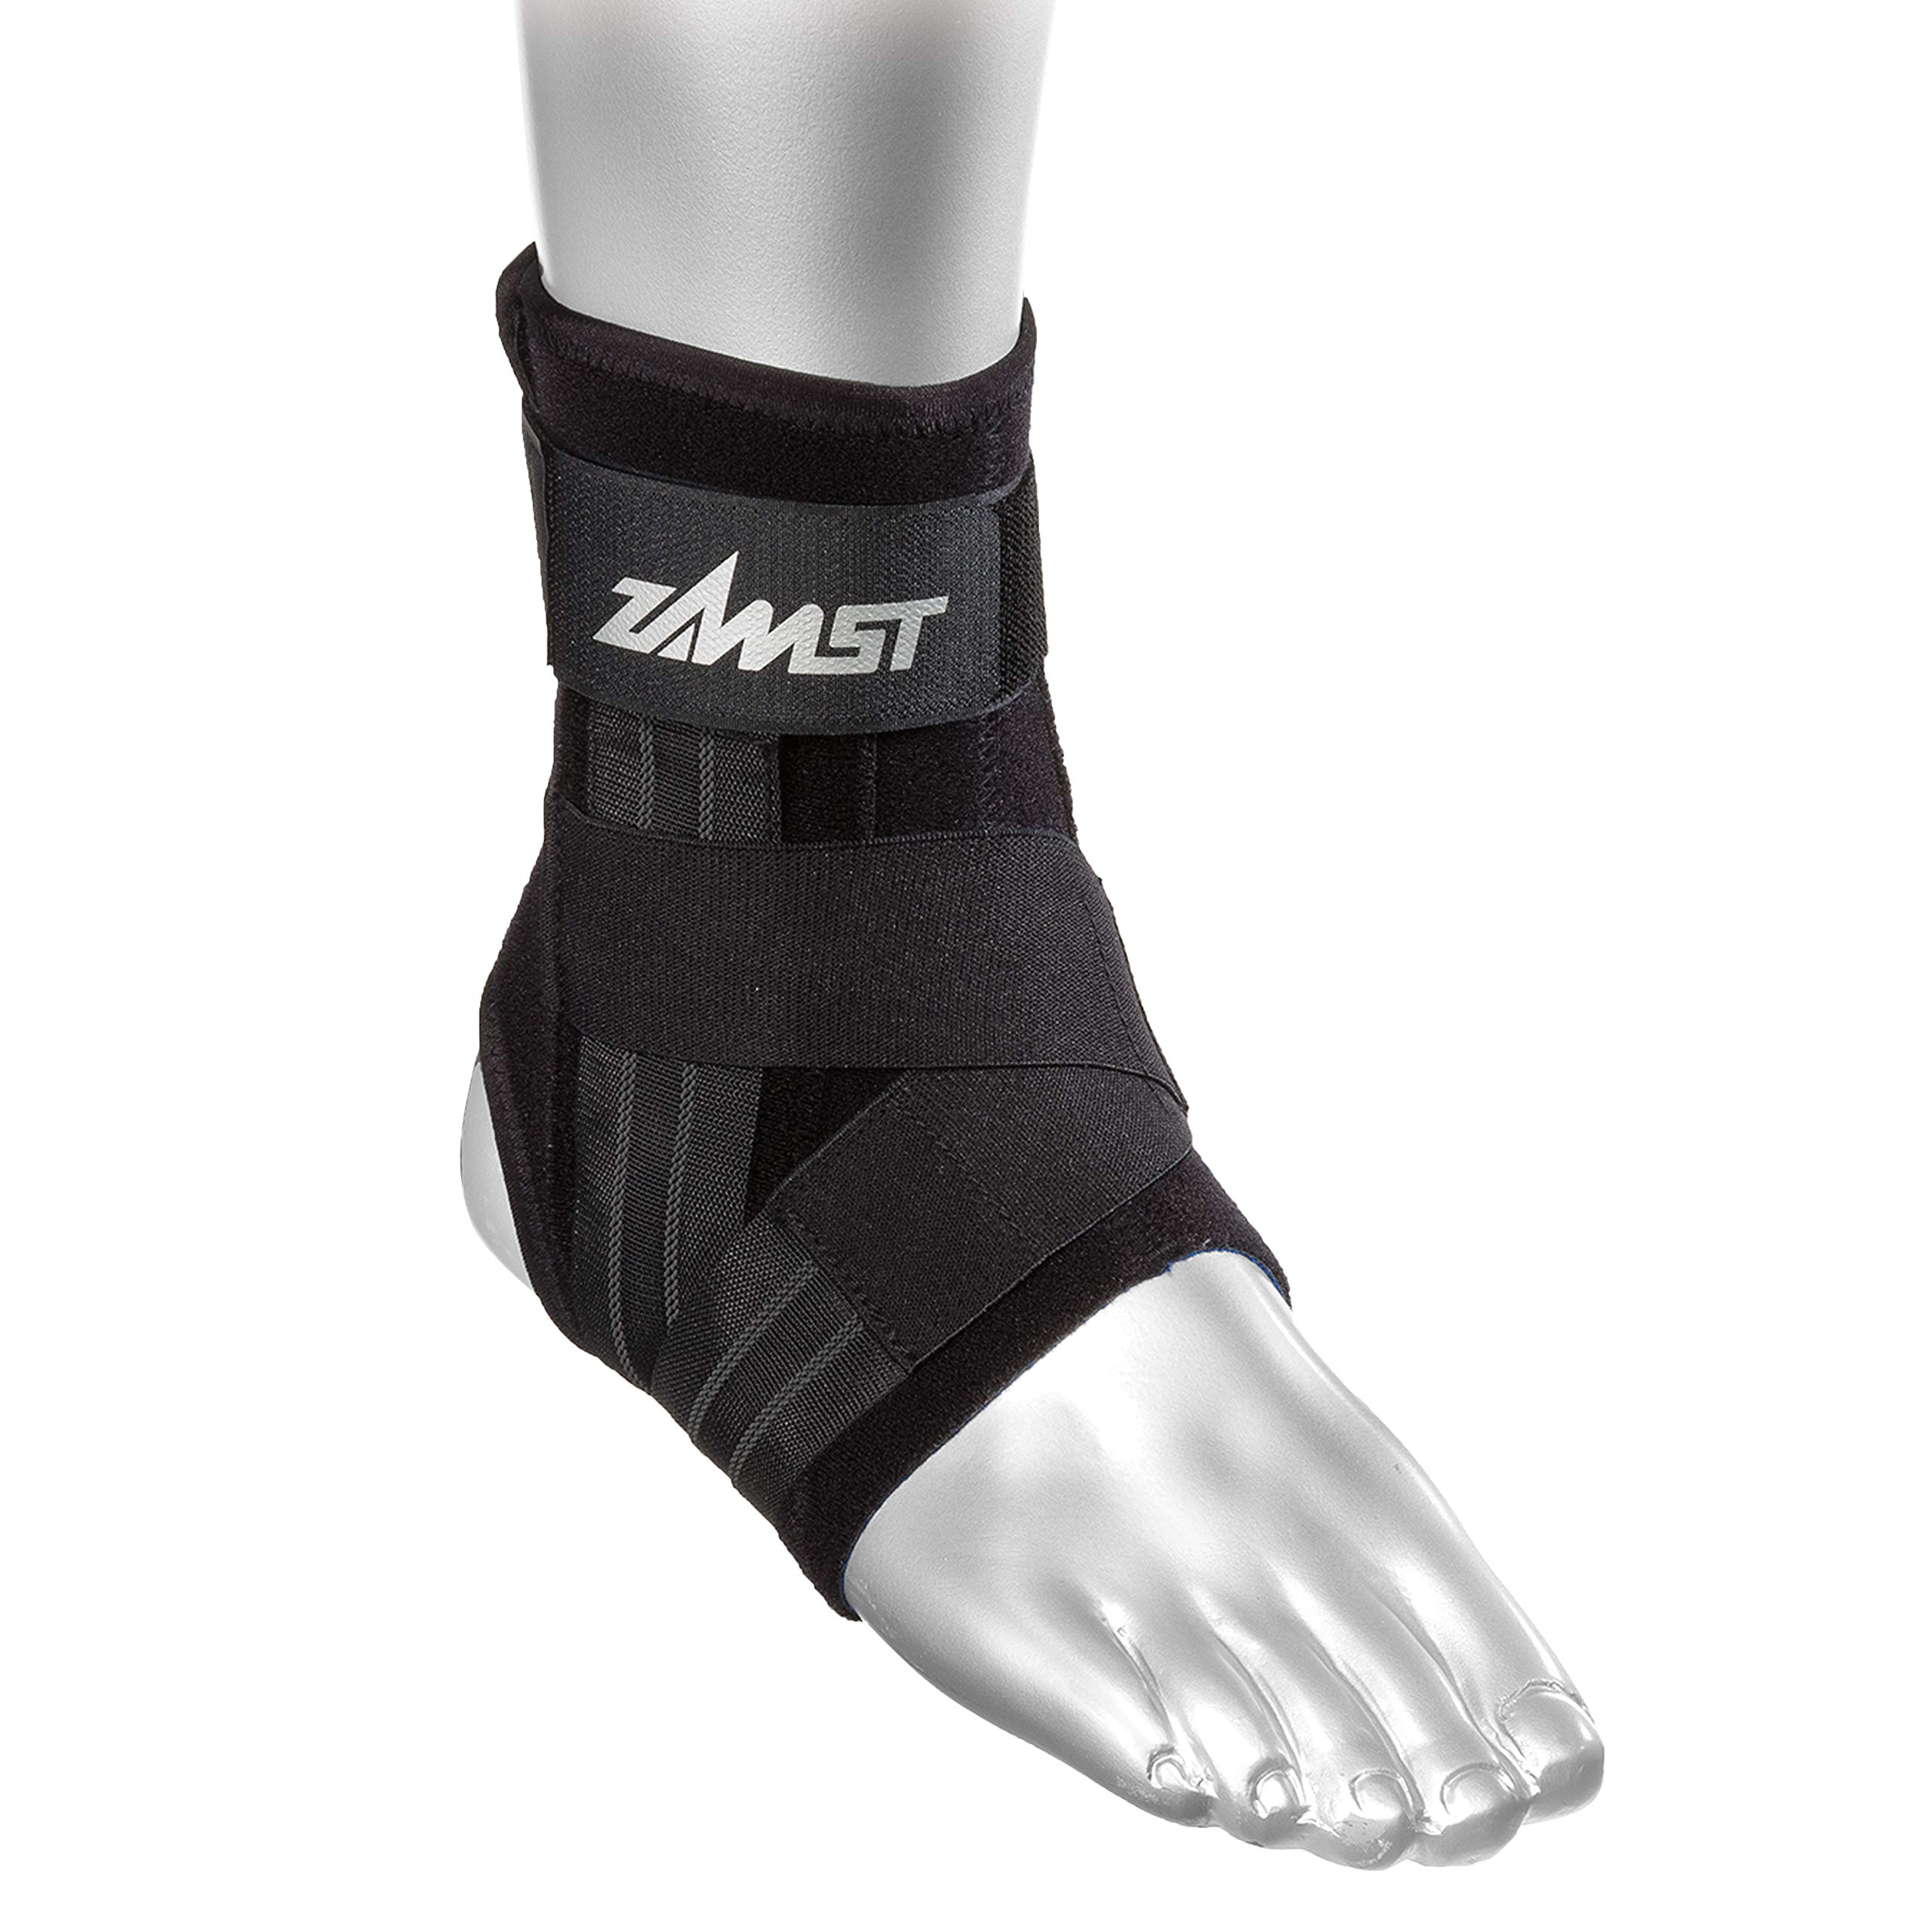 Zamst A1 Right Ankle Brace, Black, Medium by Zamst